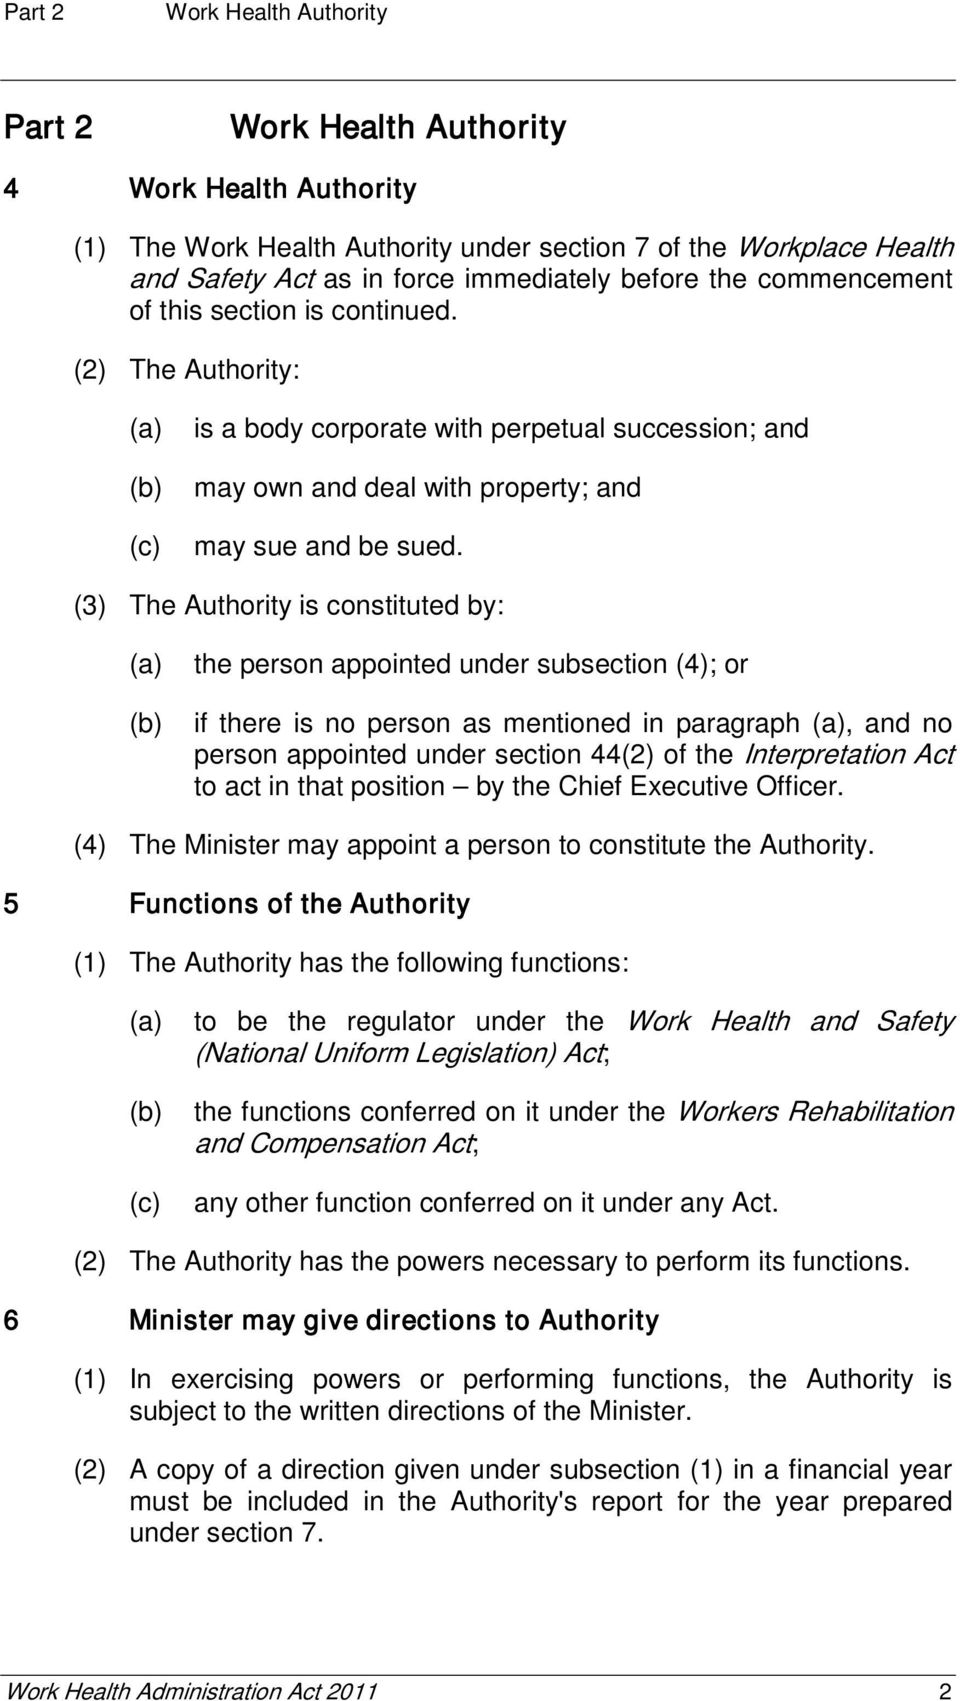 (3) The Authority is constituted by: the person appointed under subsection (4); or if there is no person as mentioned in paragraph, and no person appointed under section 44(2) of the Interpretation